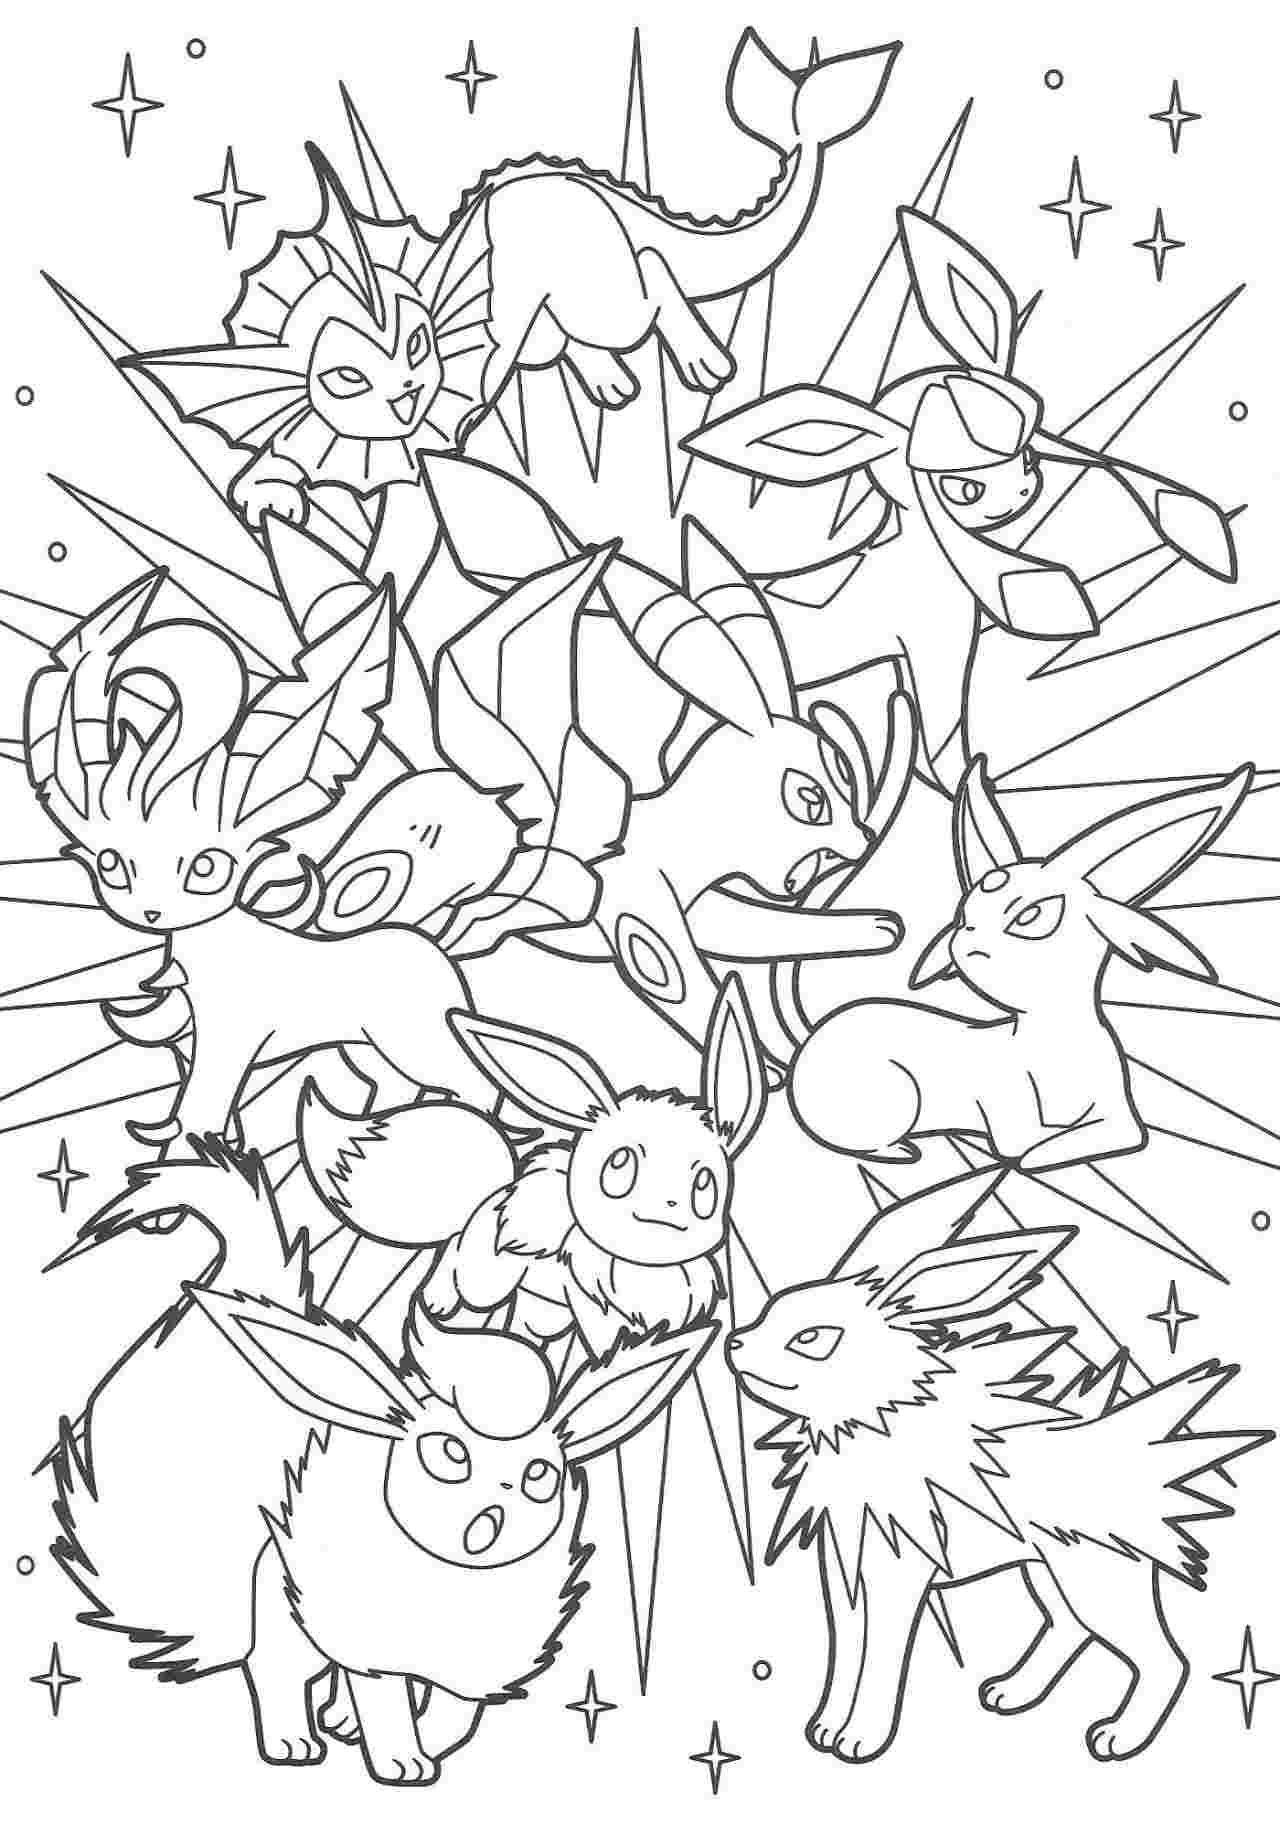 Pokemon Coloring Pages Eevee Evolutions In 2020 Pokemon Coloring Sheets Pokemon Coloring Pages Pokemon Coloring